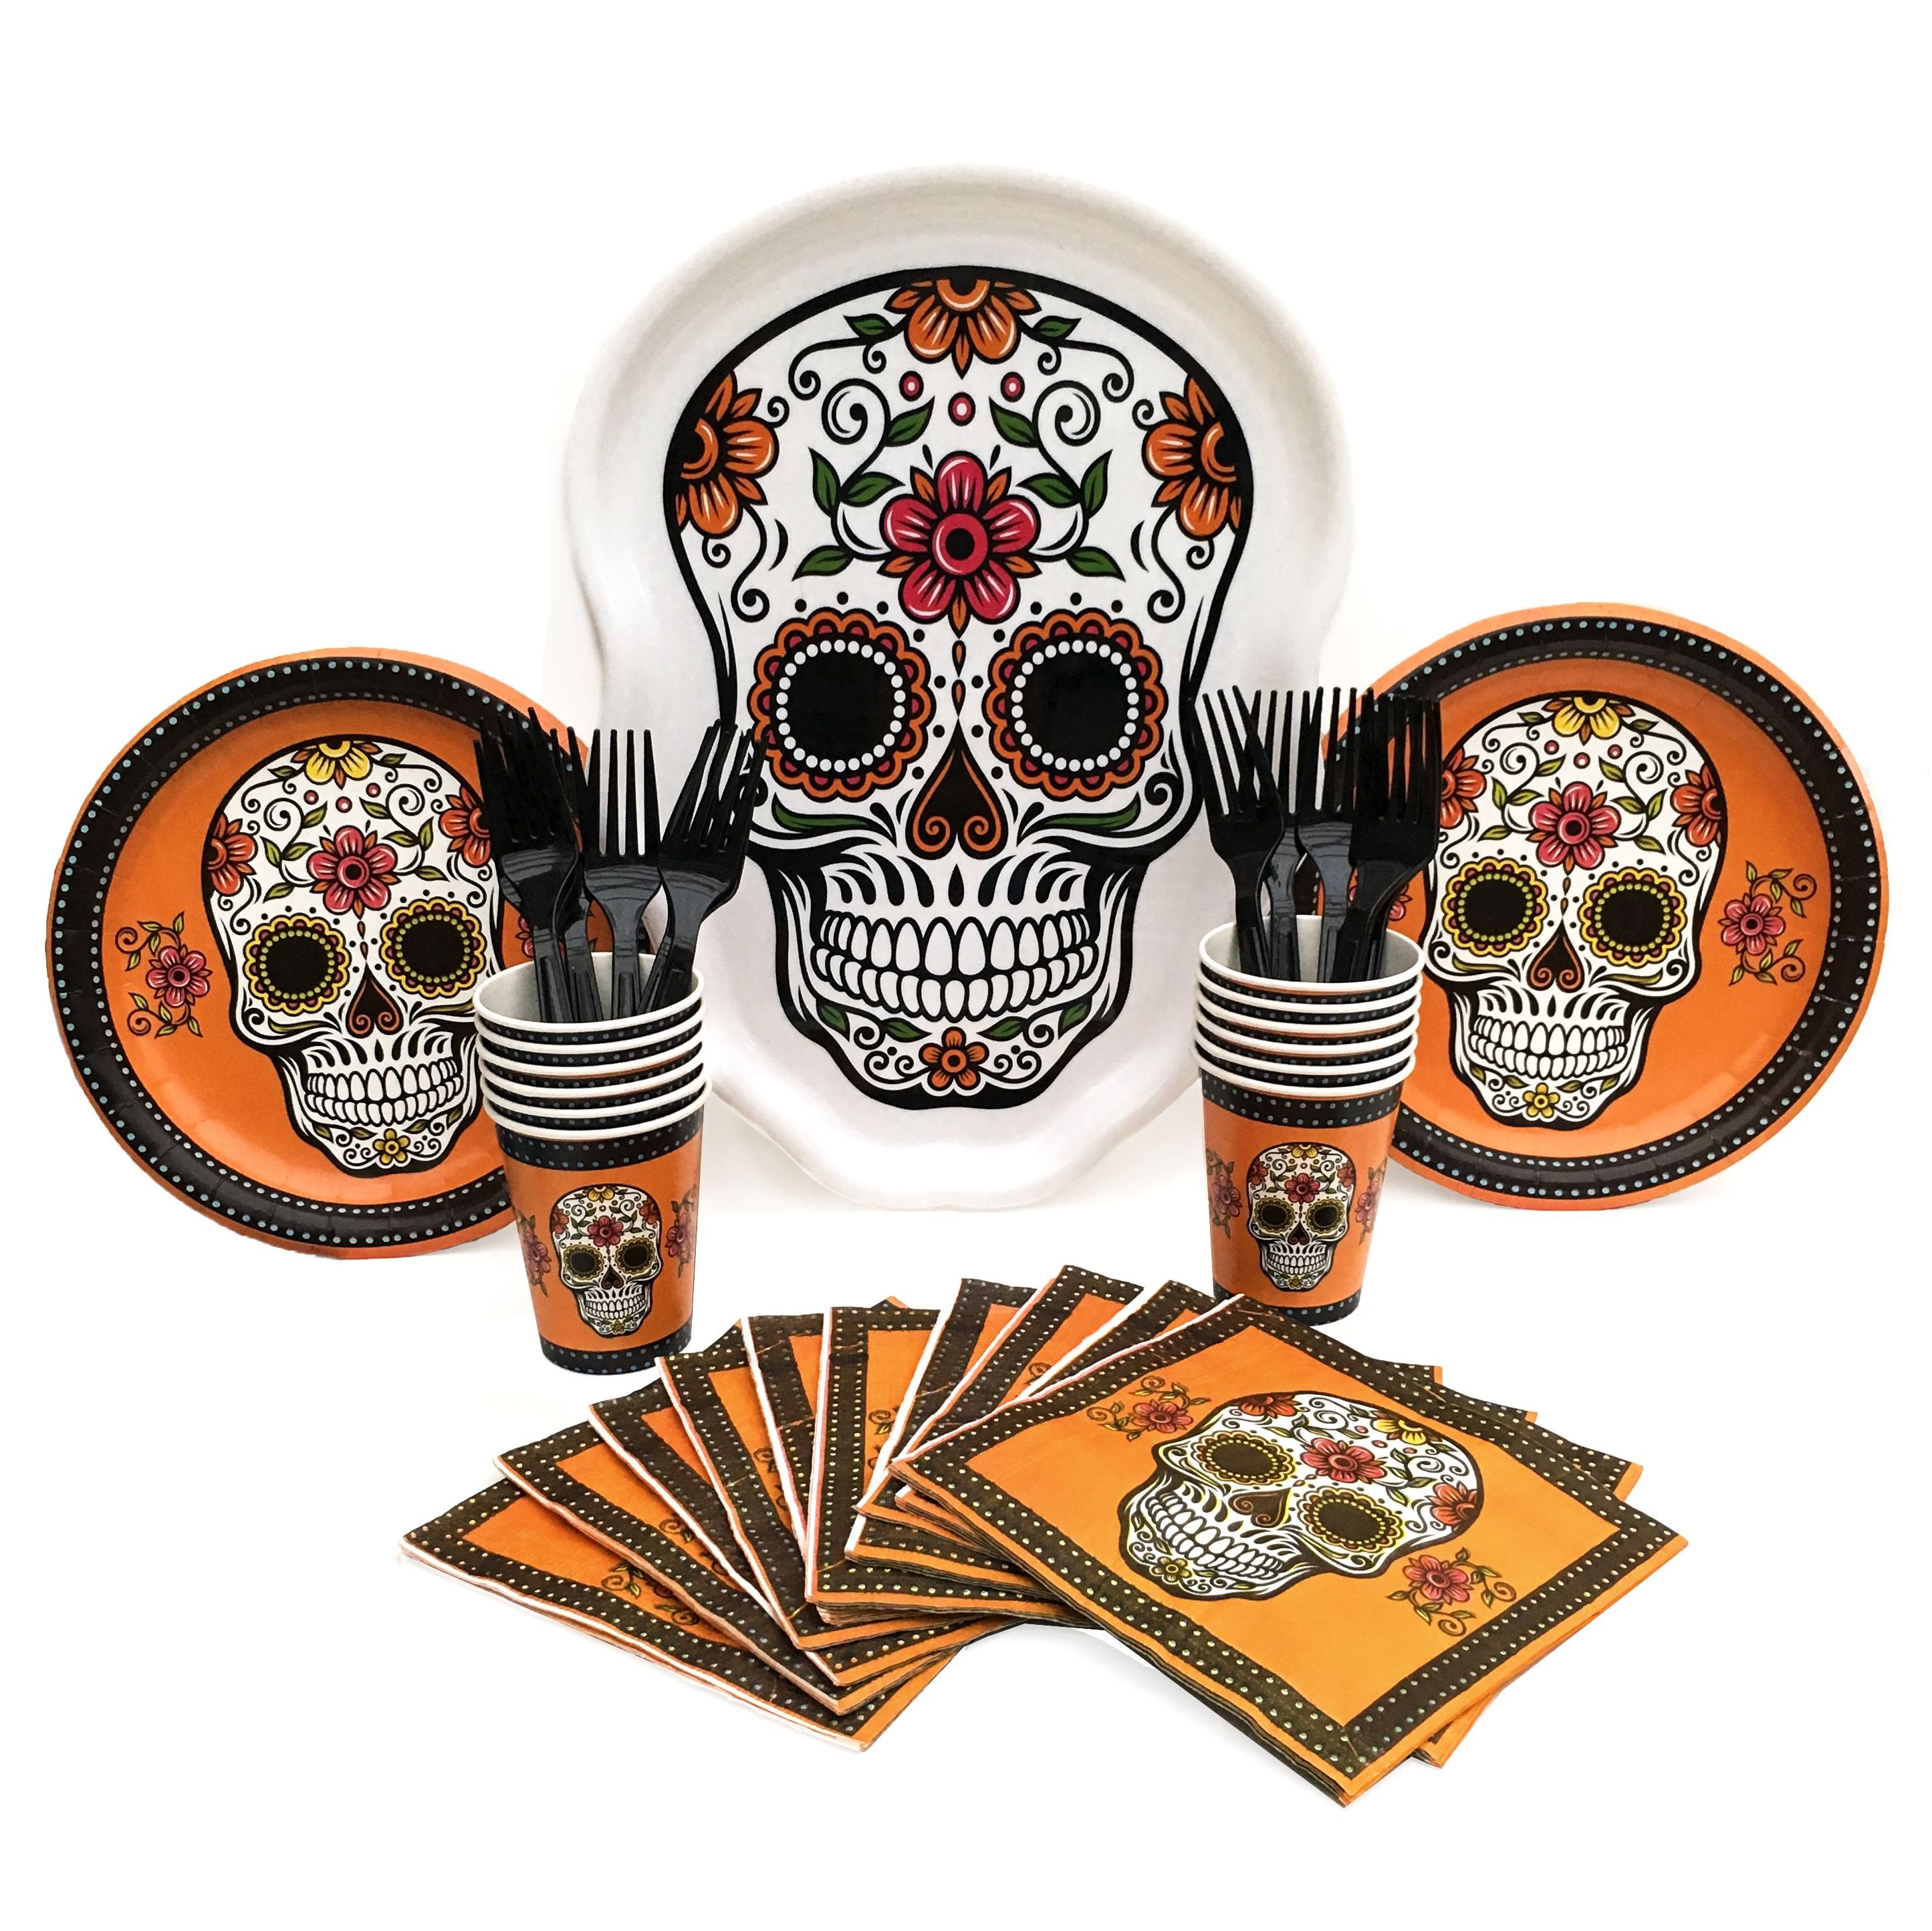 Halloween Party Supply Bundle with Plates Cups Napkins Forks and Serving Tray - My Sugar Skulls  sc 1 st  Pinterest & Day of the Dead (Dia de Muertos) Halloween Party Supplies ...